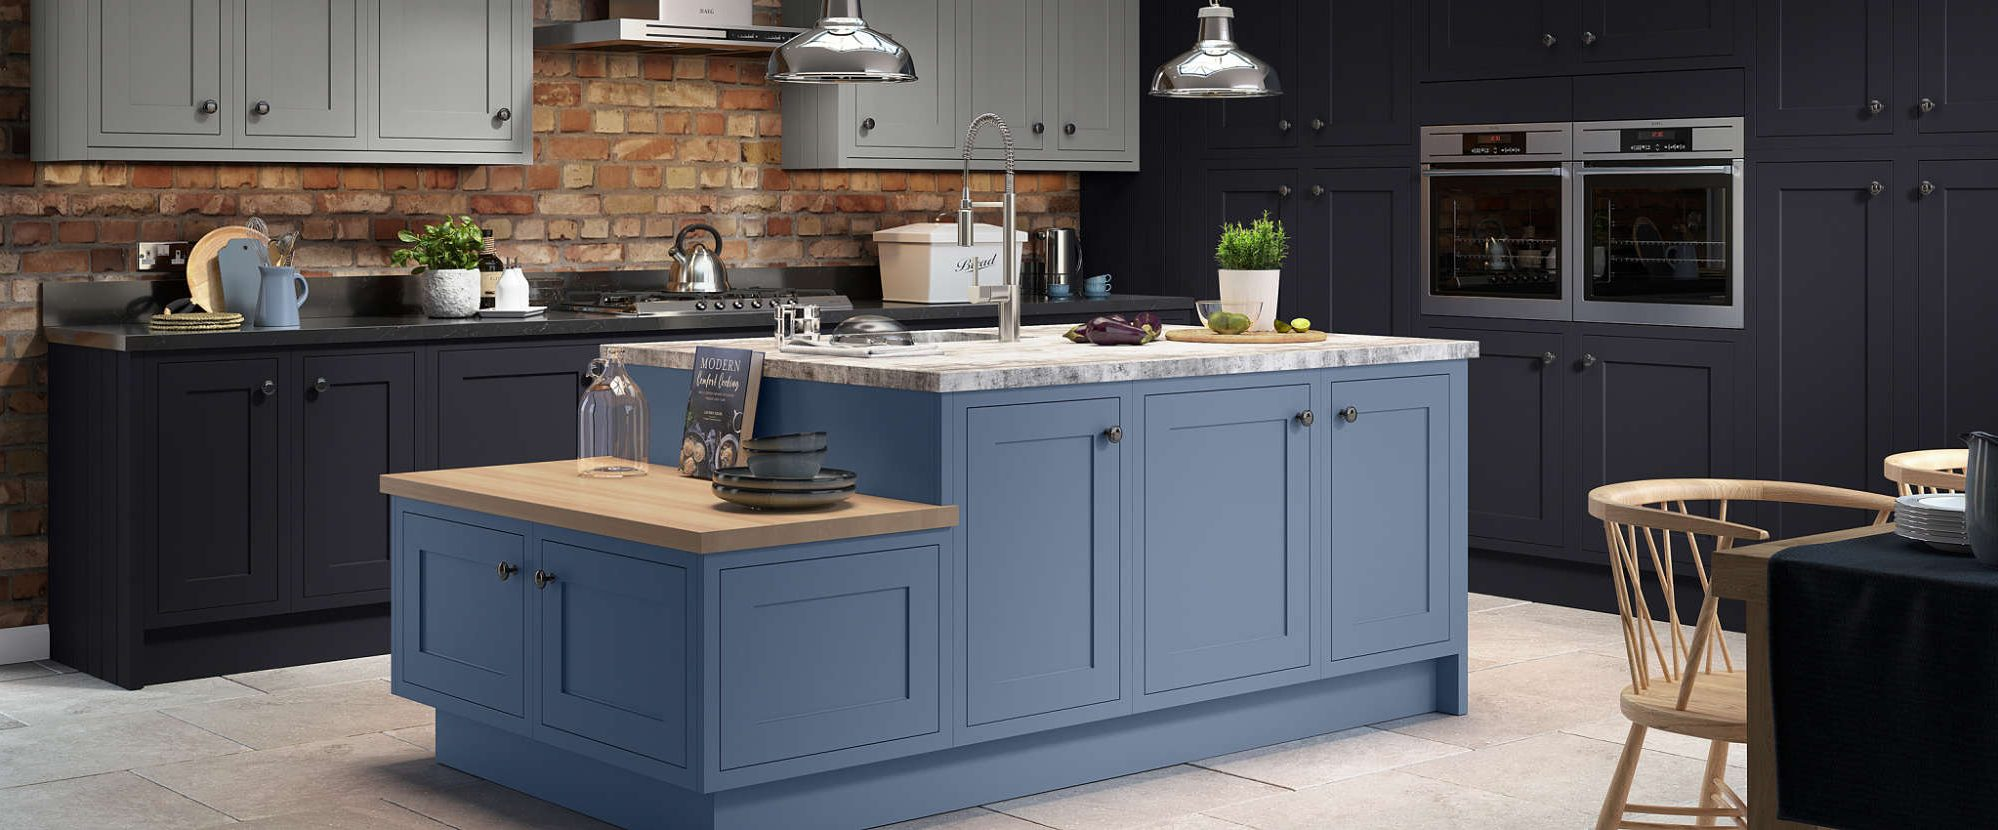 Painted Blue Kitchen